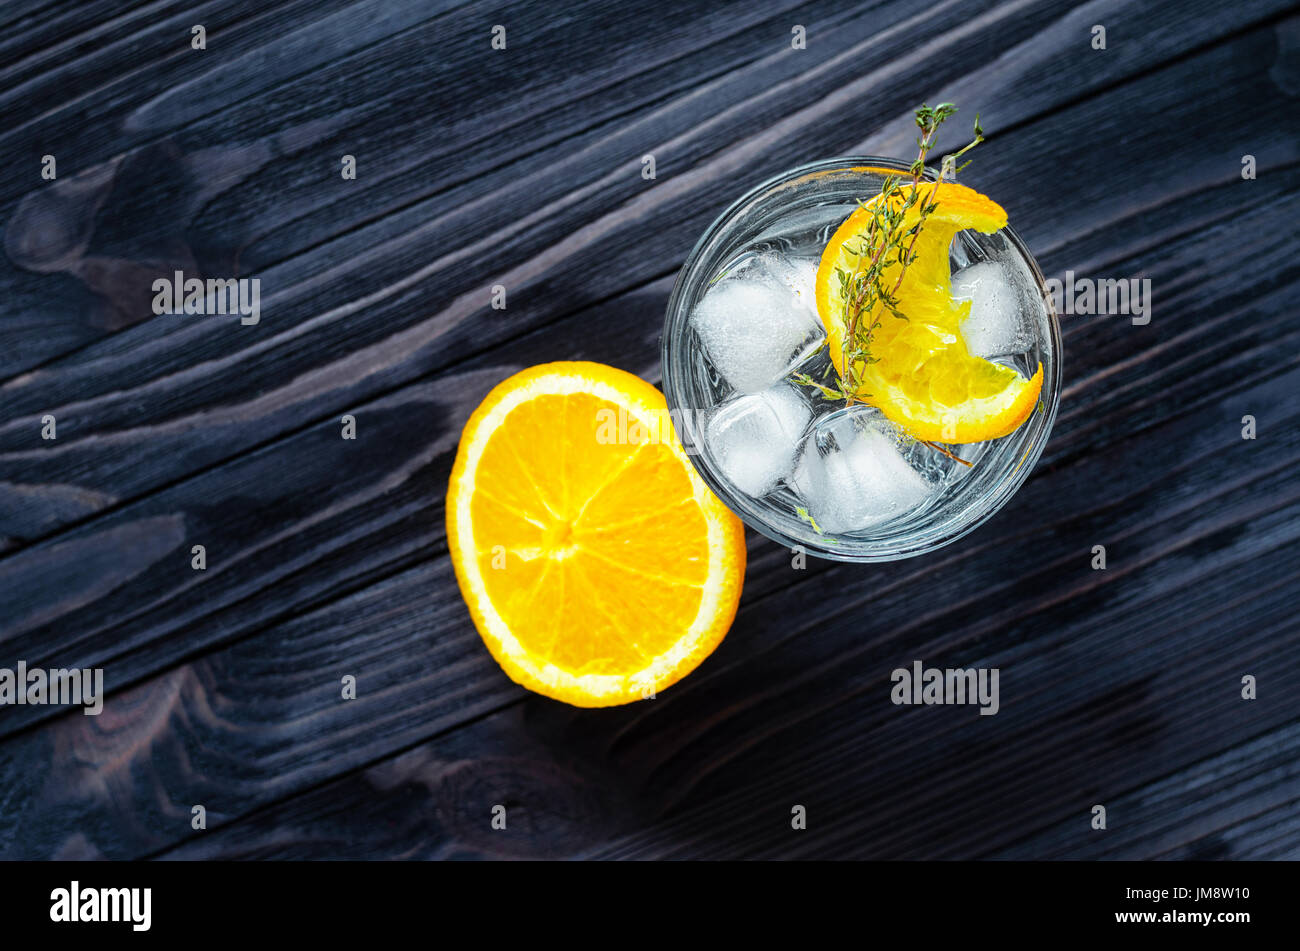 Cut lemon near the alcoholic cocktail on dark wood table top view. Blank space for text placement - Stock Image